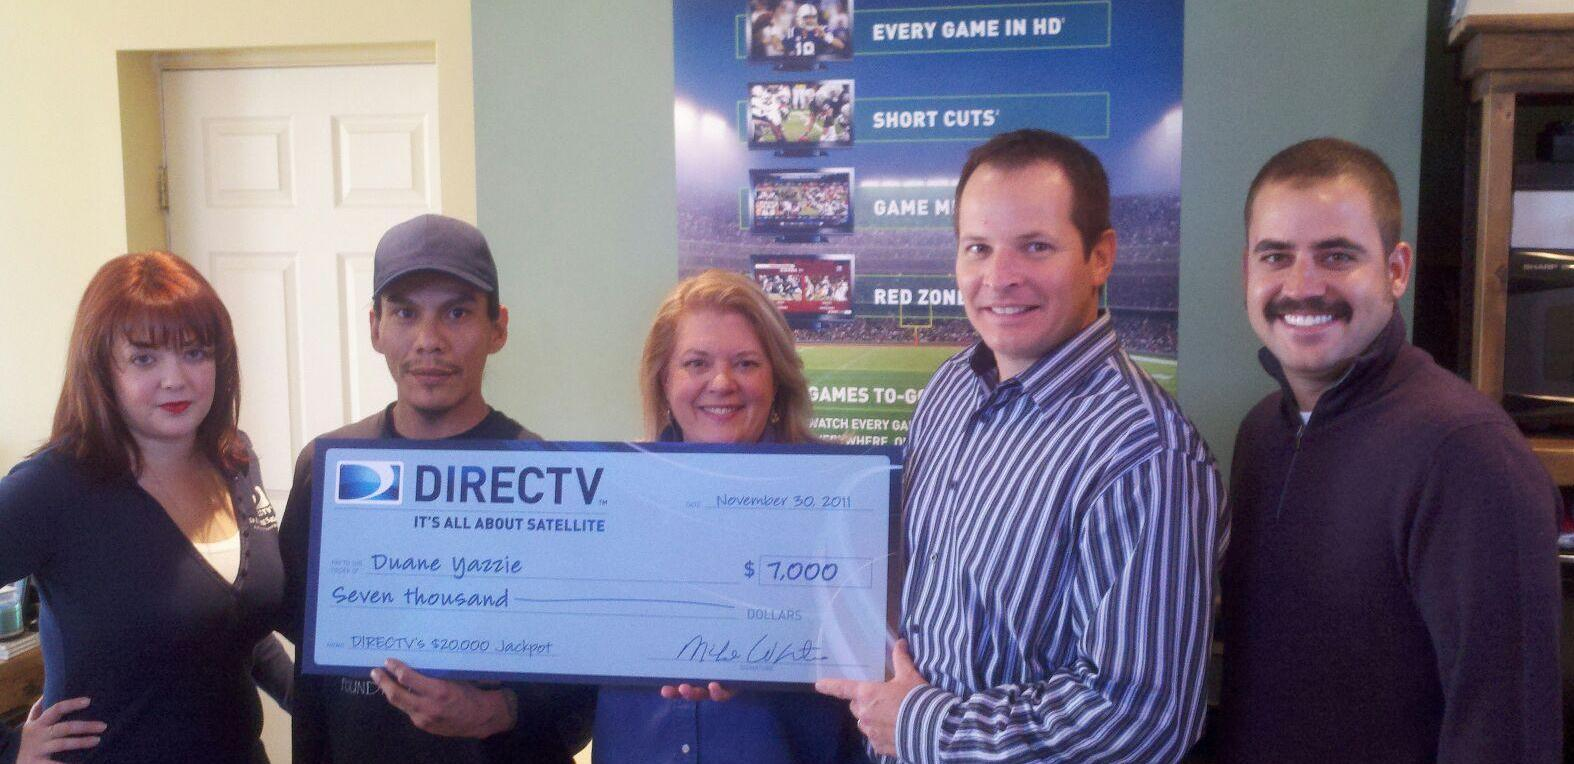 DIRECTV & Its All About Satellites $7000 Contest Winner